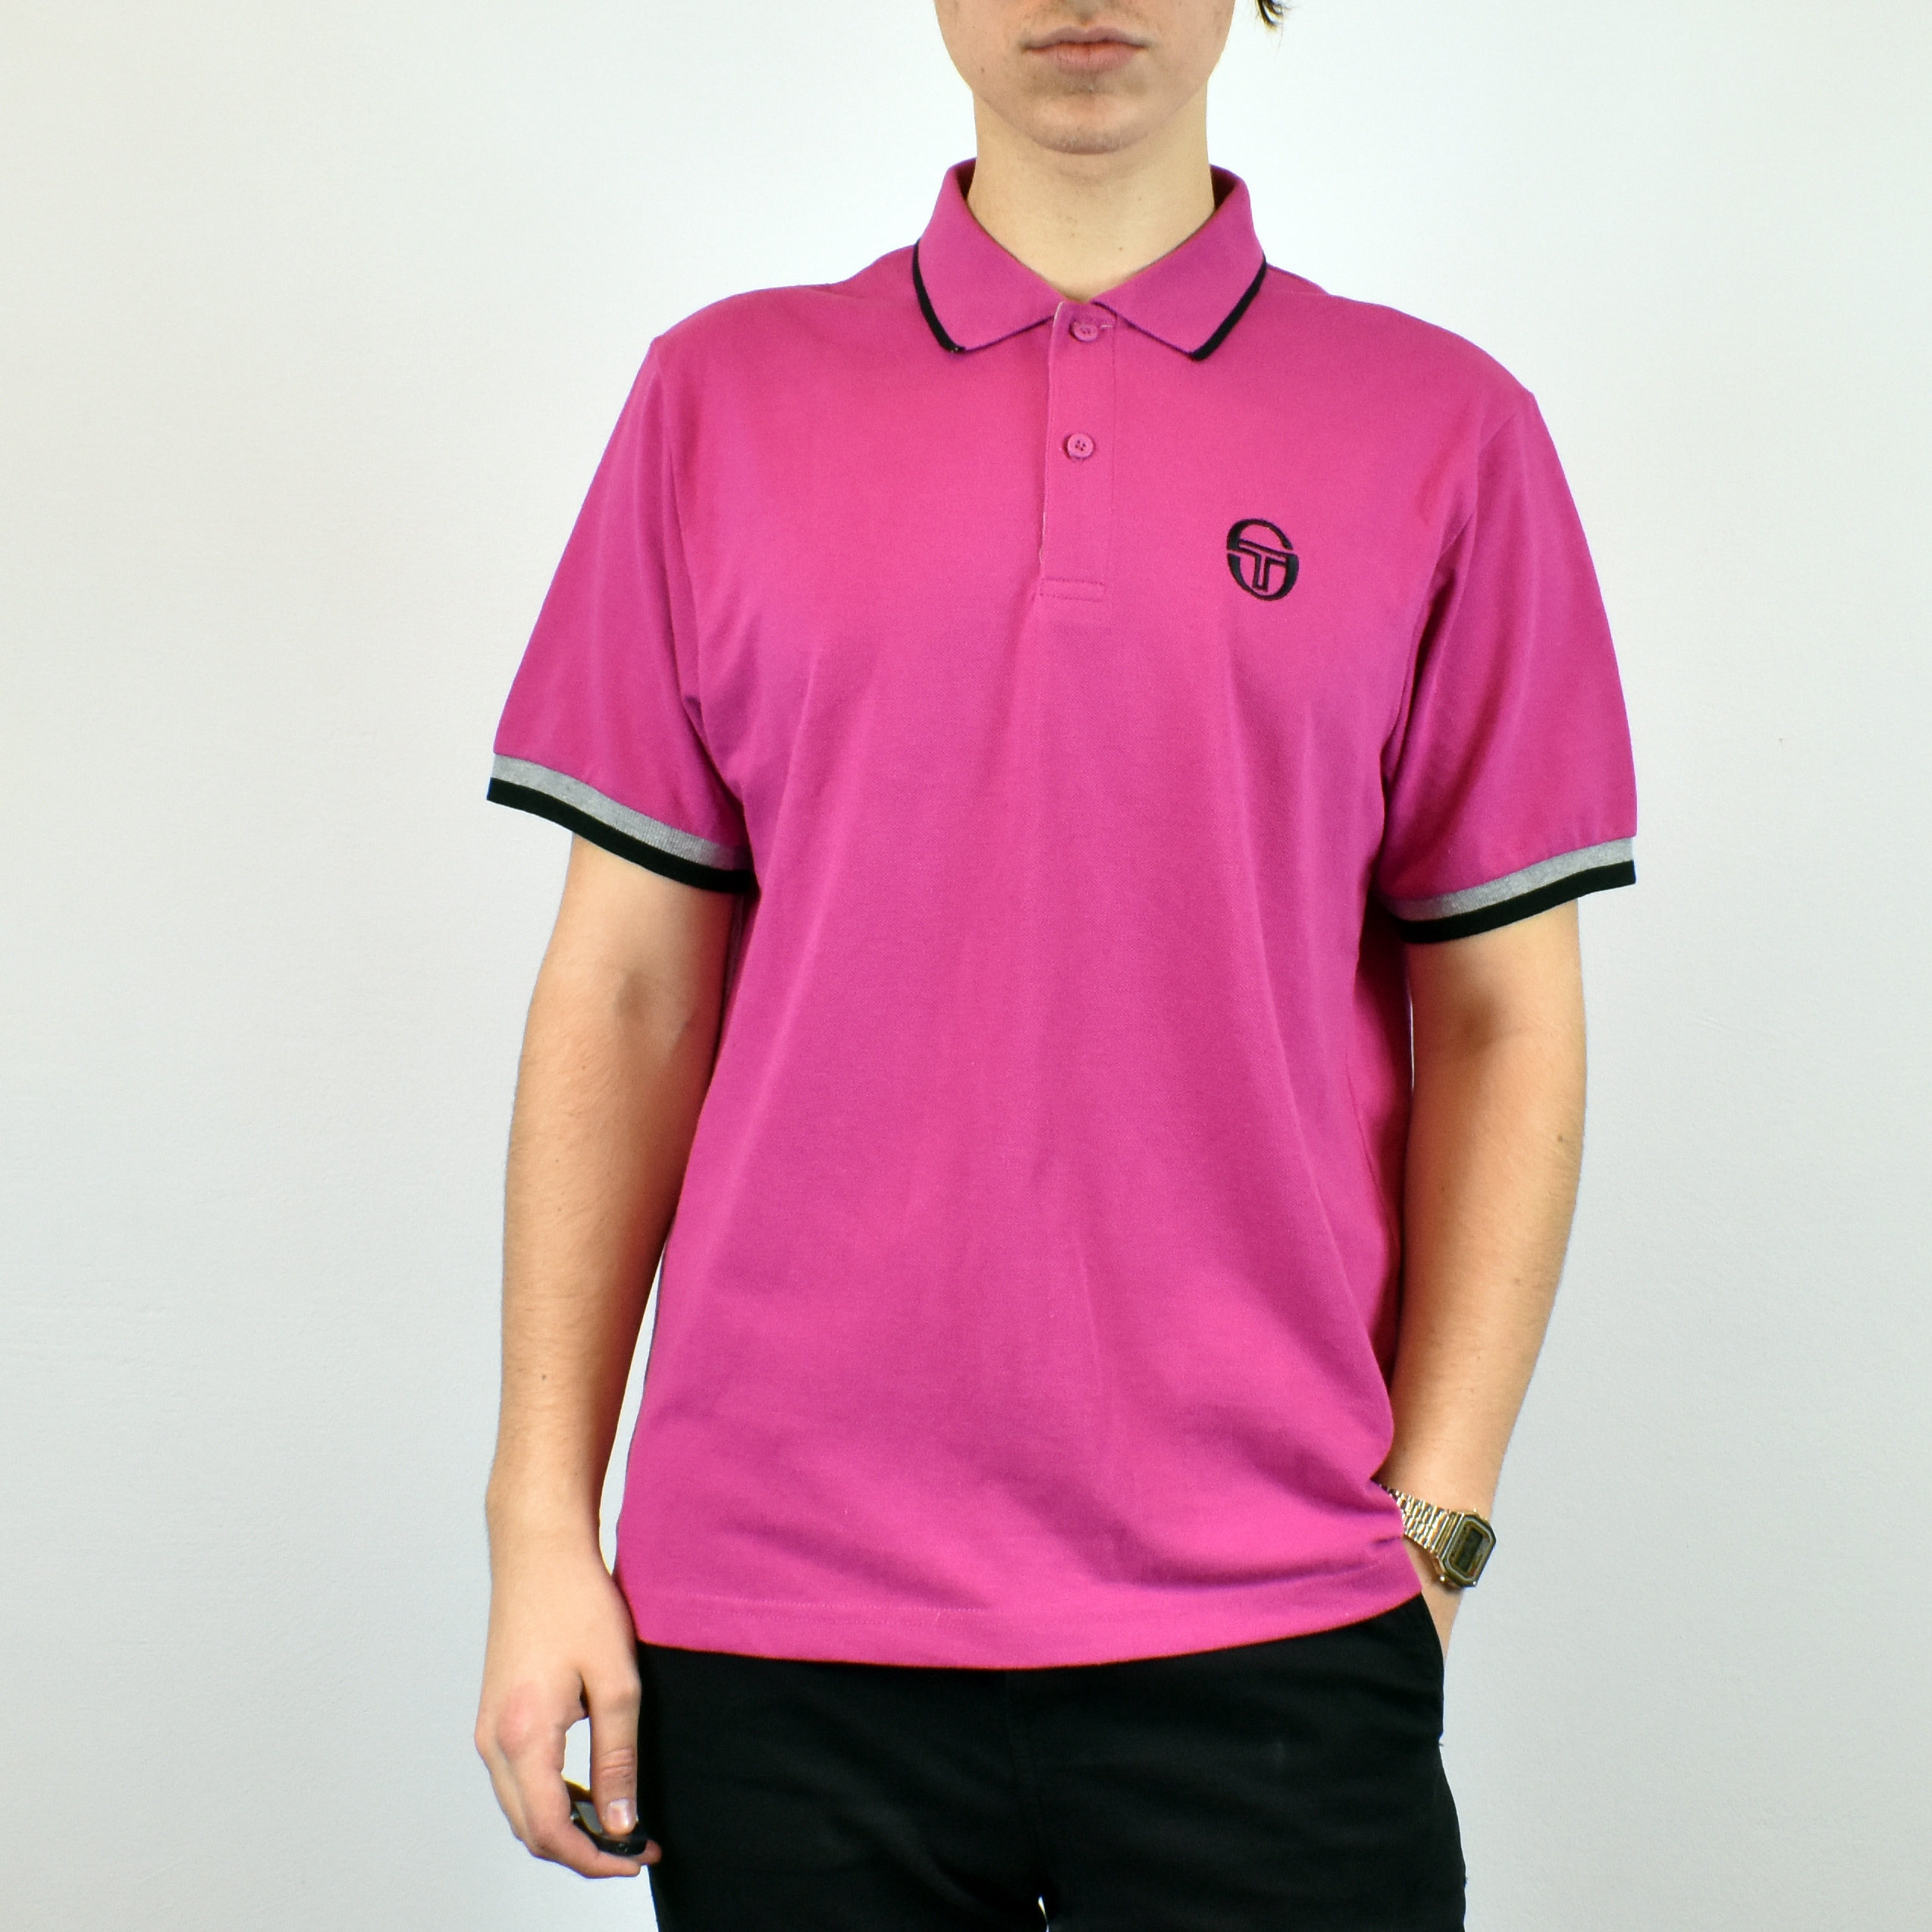 Unisex Vintage Sergio Tacchini Polo shirt in pink